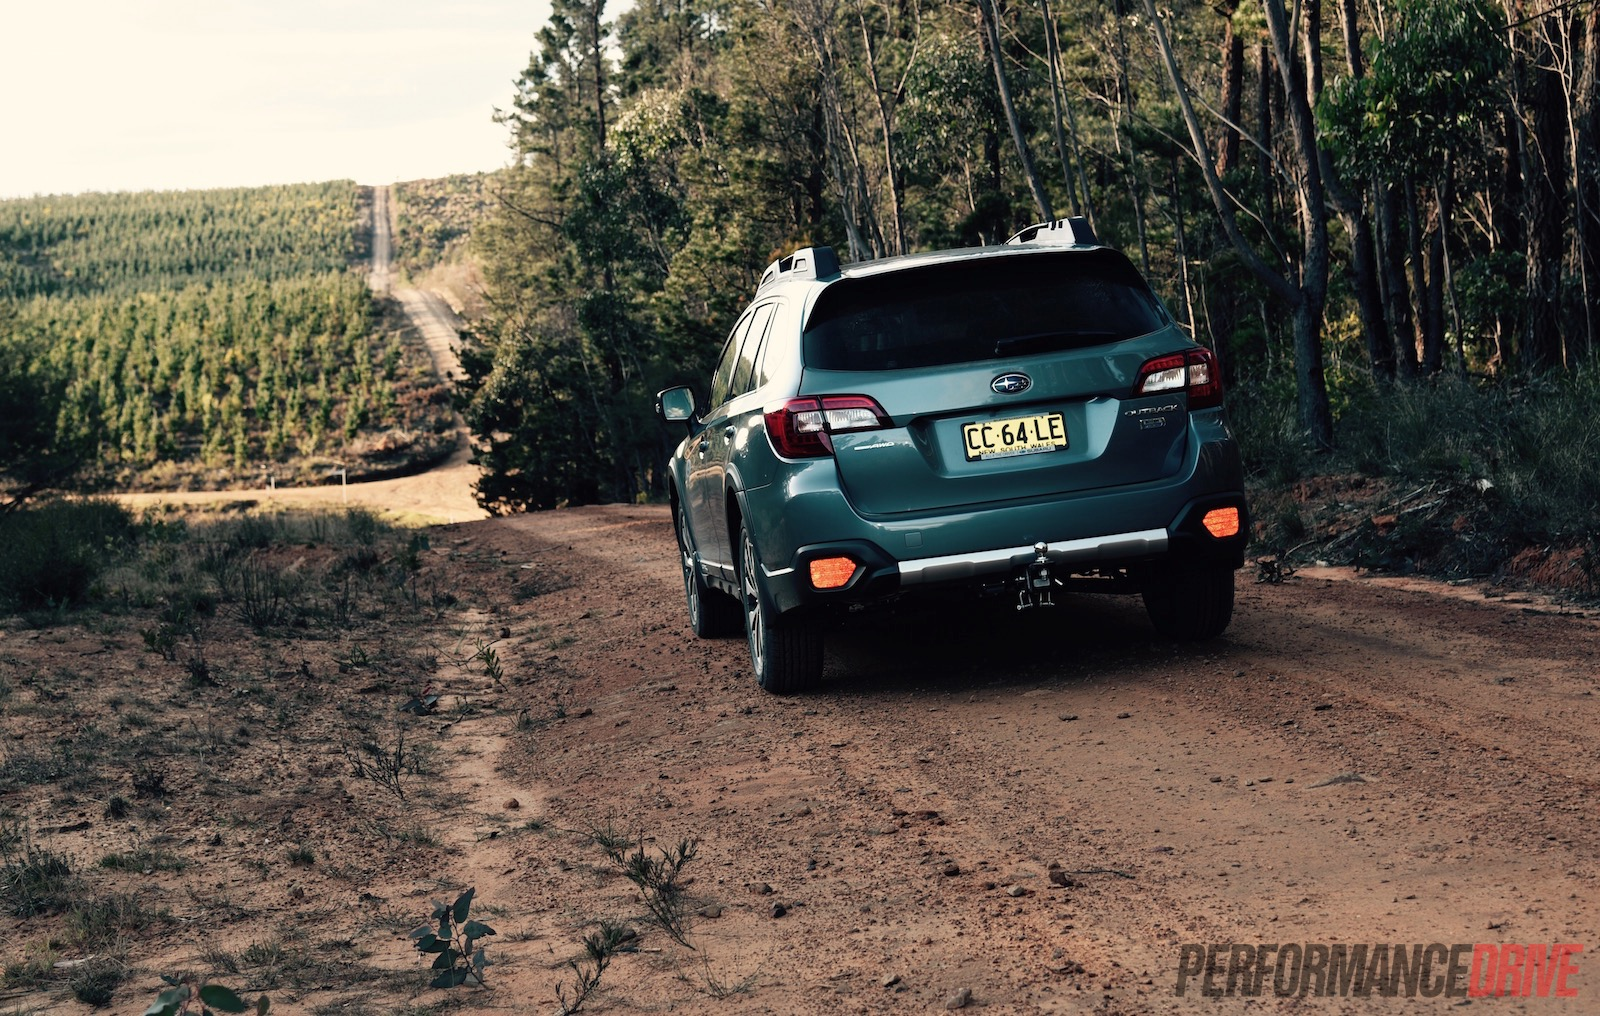 2015 Subaru Outback Review Video 20d 25i Performancedrive Engines Boxer 4wd Diagram 44